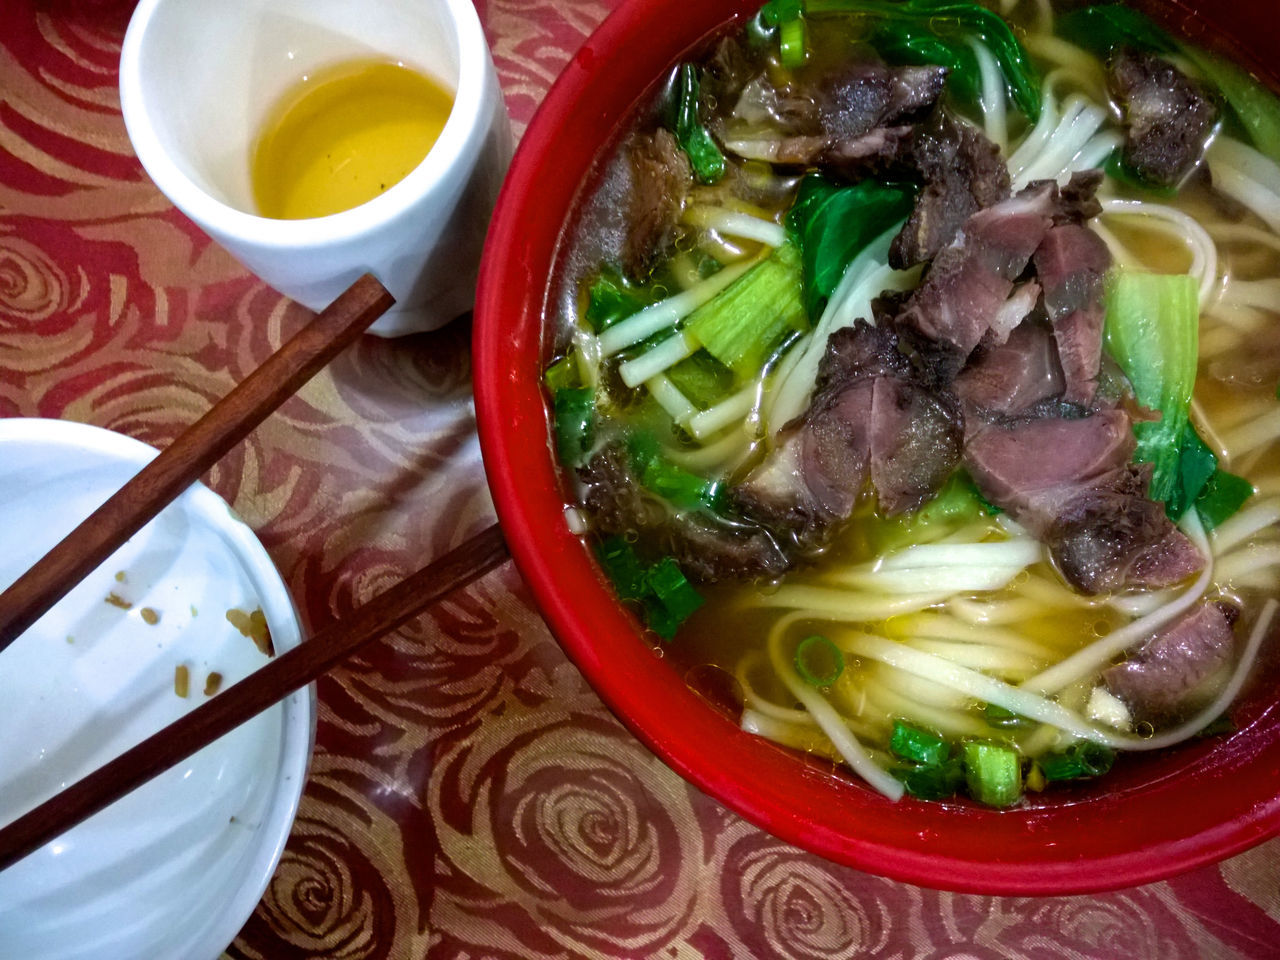 food and drink, ready-to-eat, bowl, food, noodles, indoors, serving size, meat, freshness, close-up, no people, plate, soup, chopsticks, healthy eating, meal, day